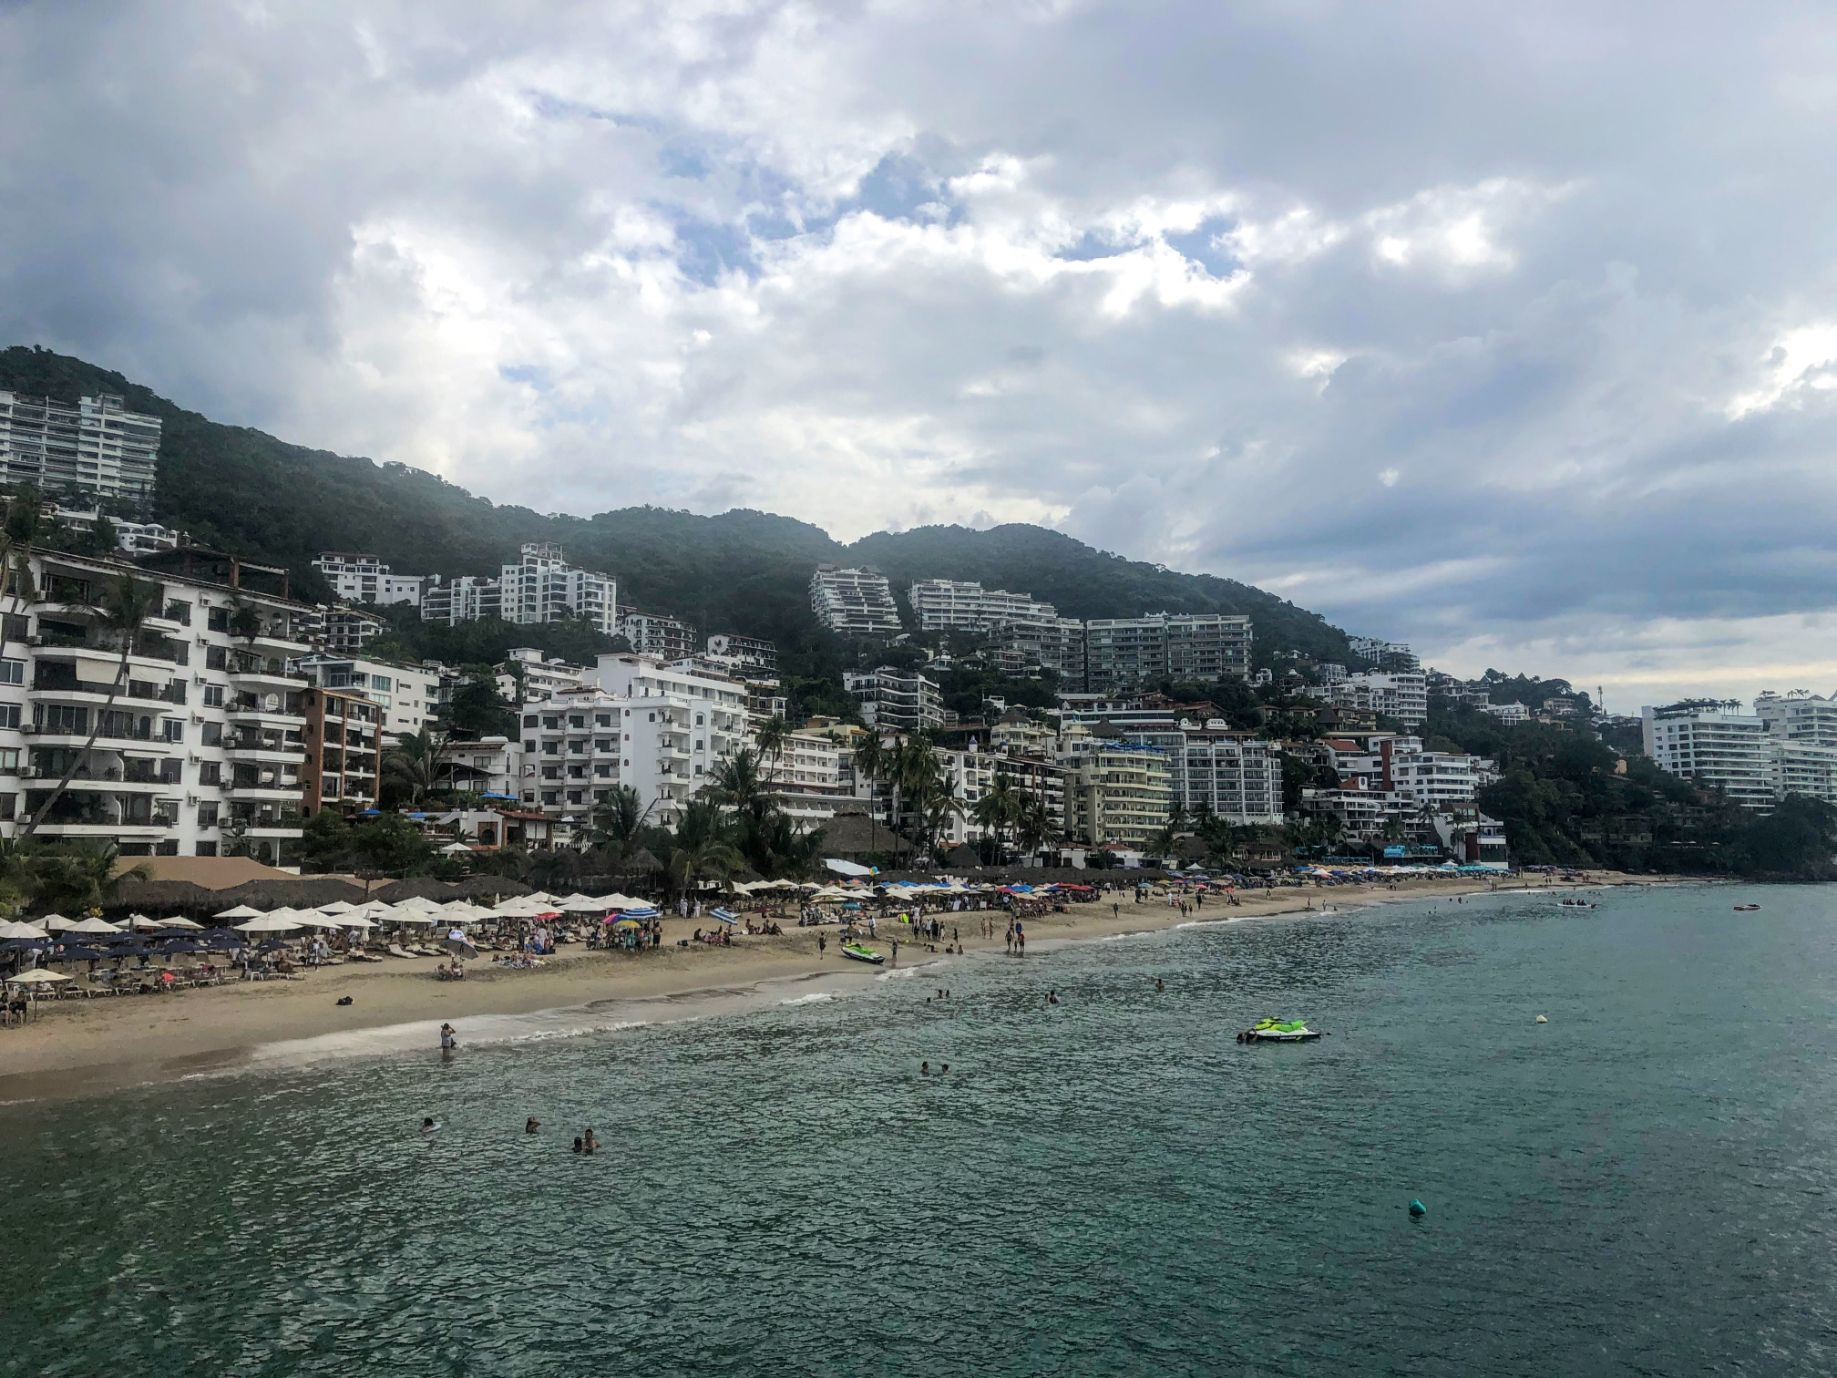 View of the Zona Romantica in Puerto Vallarta from Los Muertos Beach